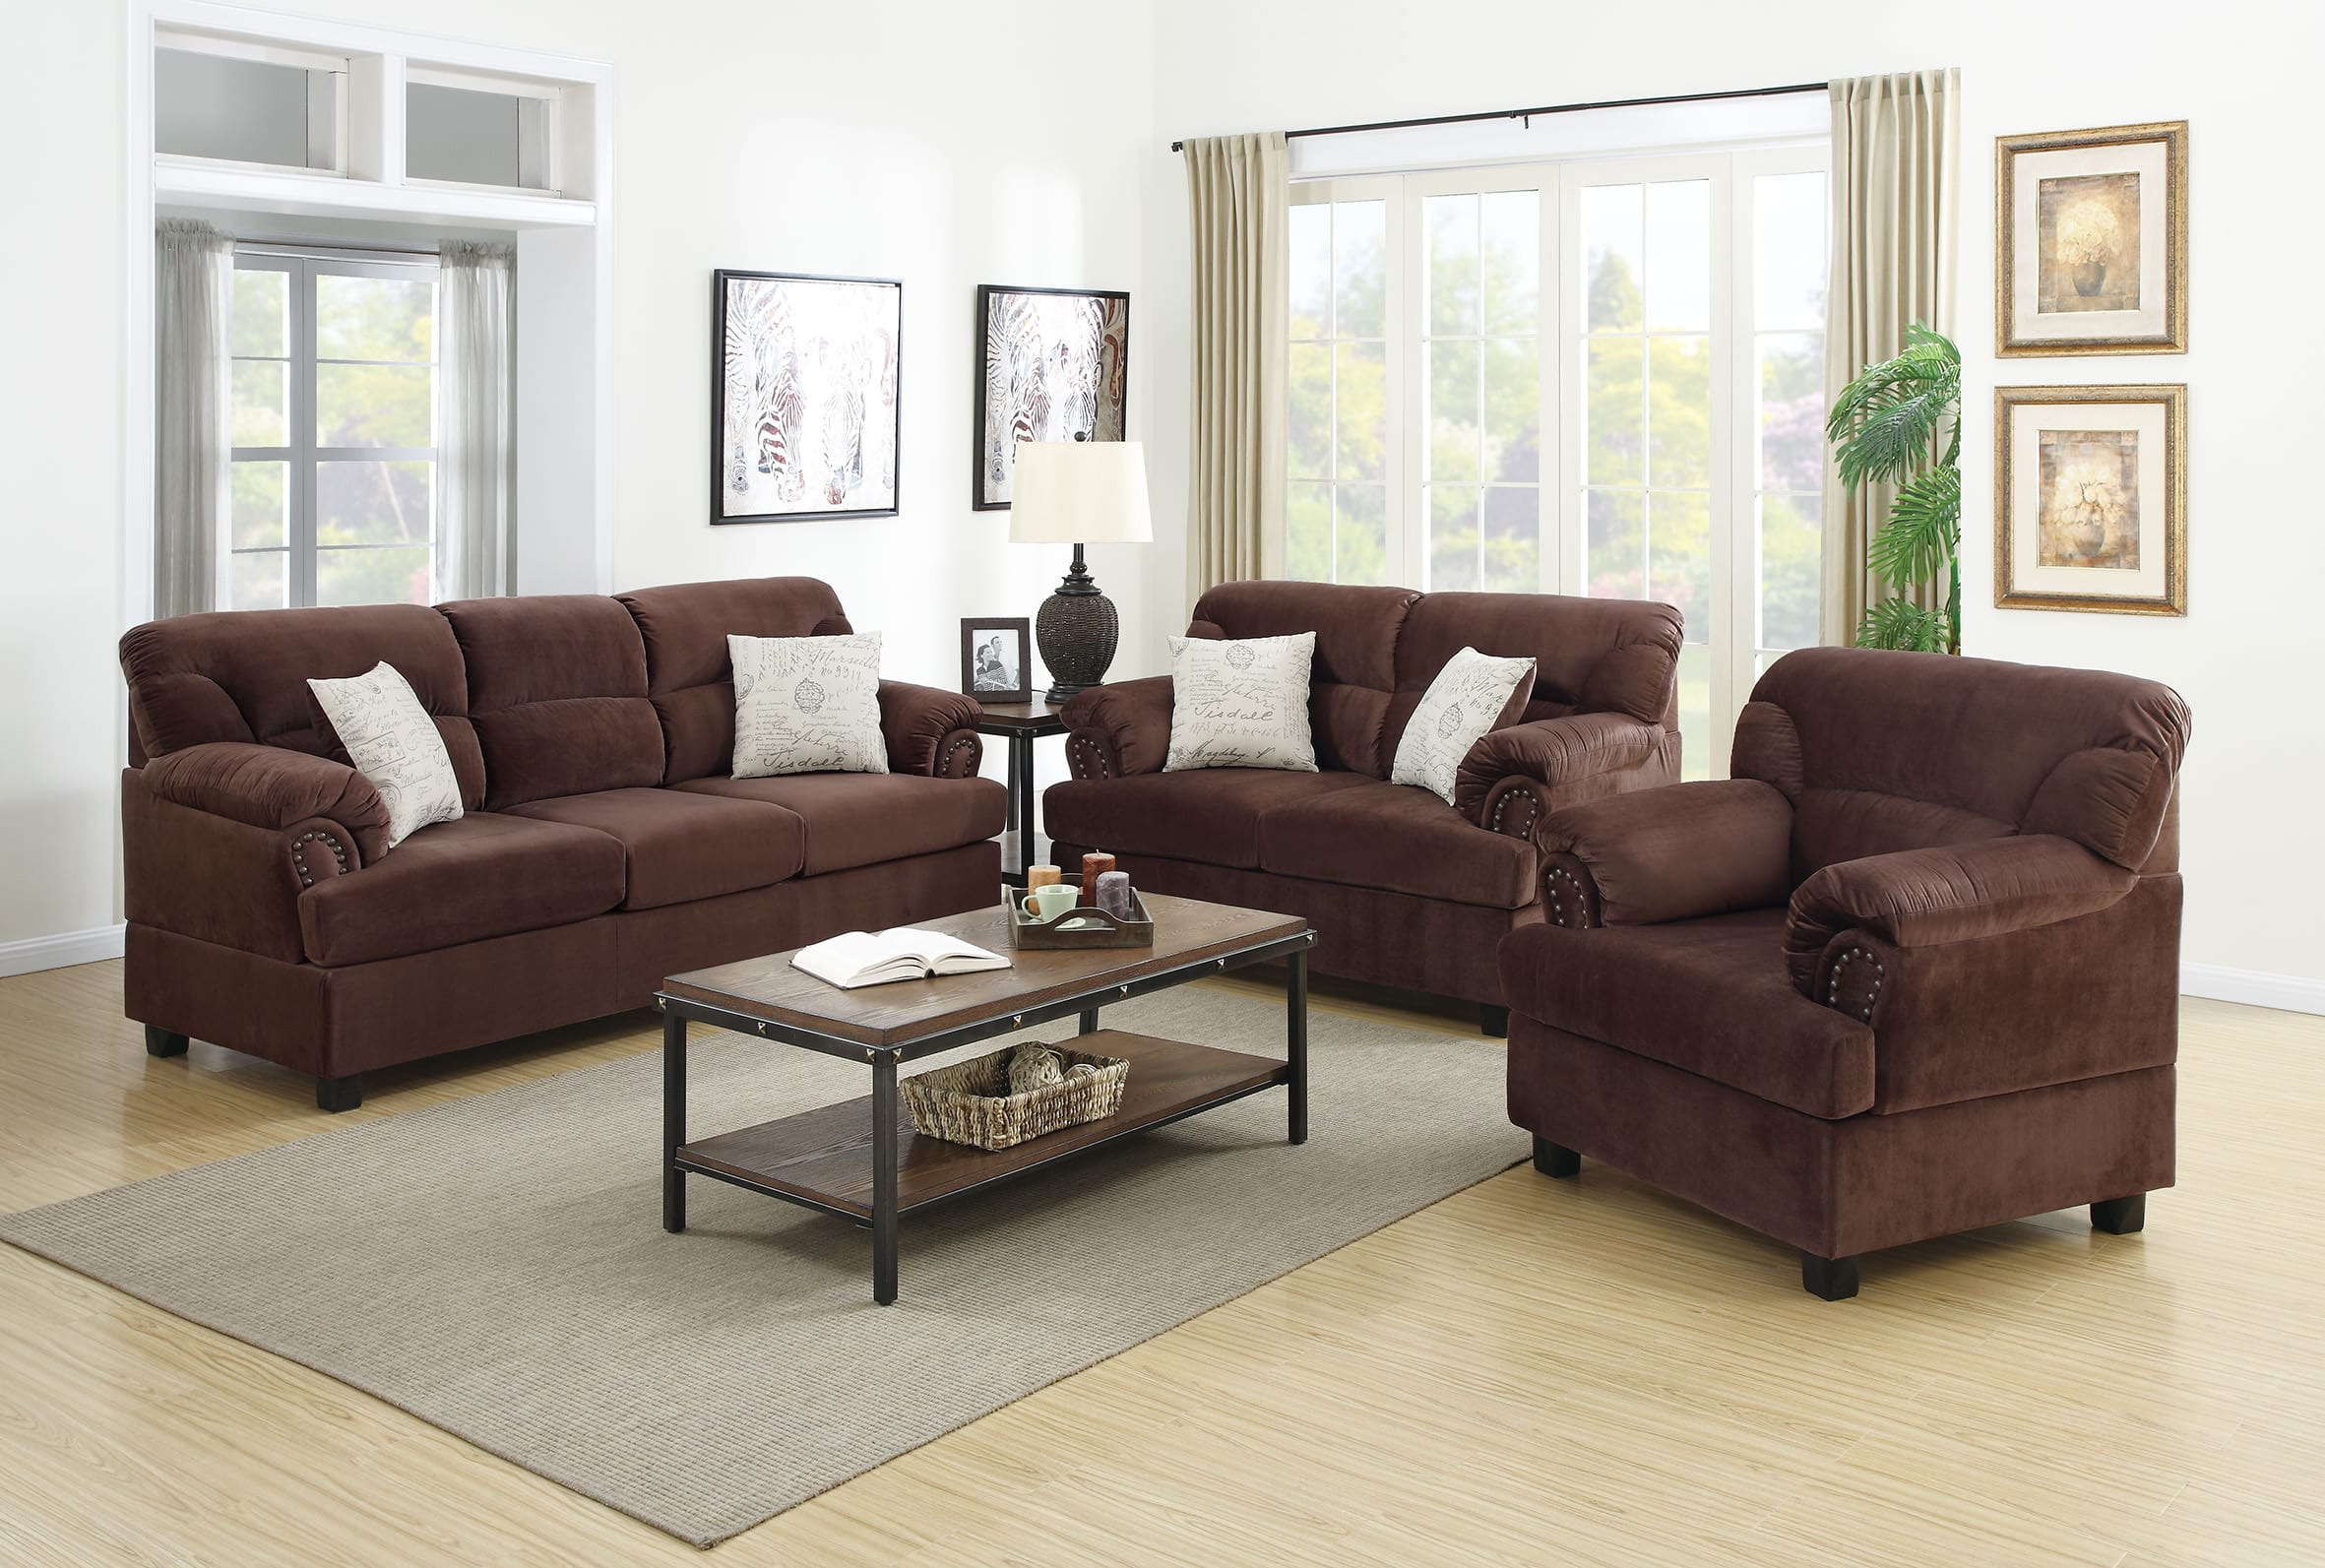 Excellent F7915 Chocolate 3 Pcs Sofa Set By Poundex Theyellowbook Wood Chair Design Ideas Theyellowbookinfo